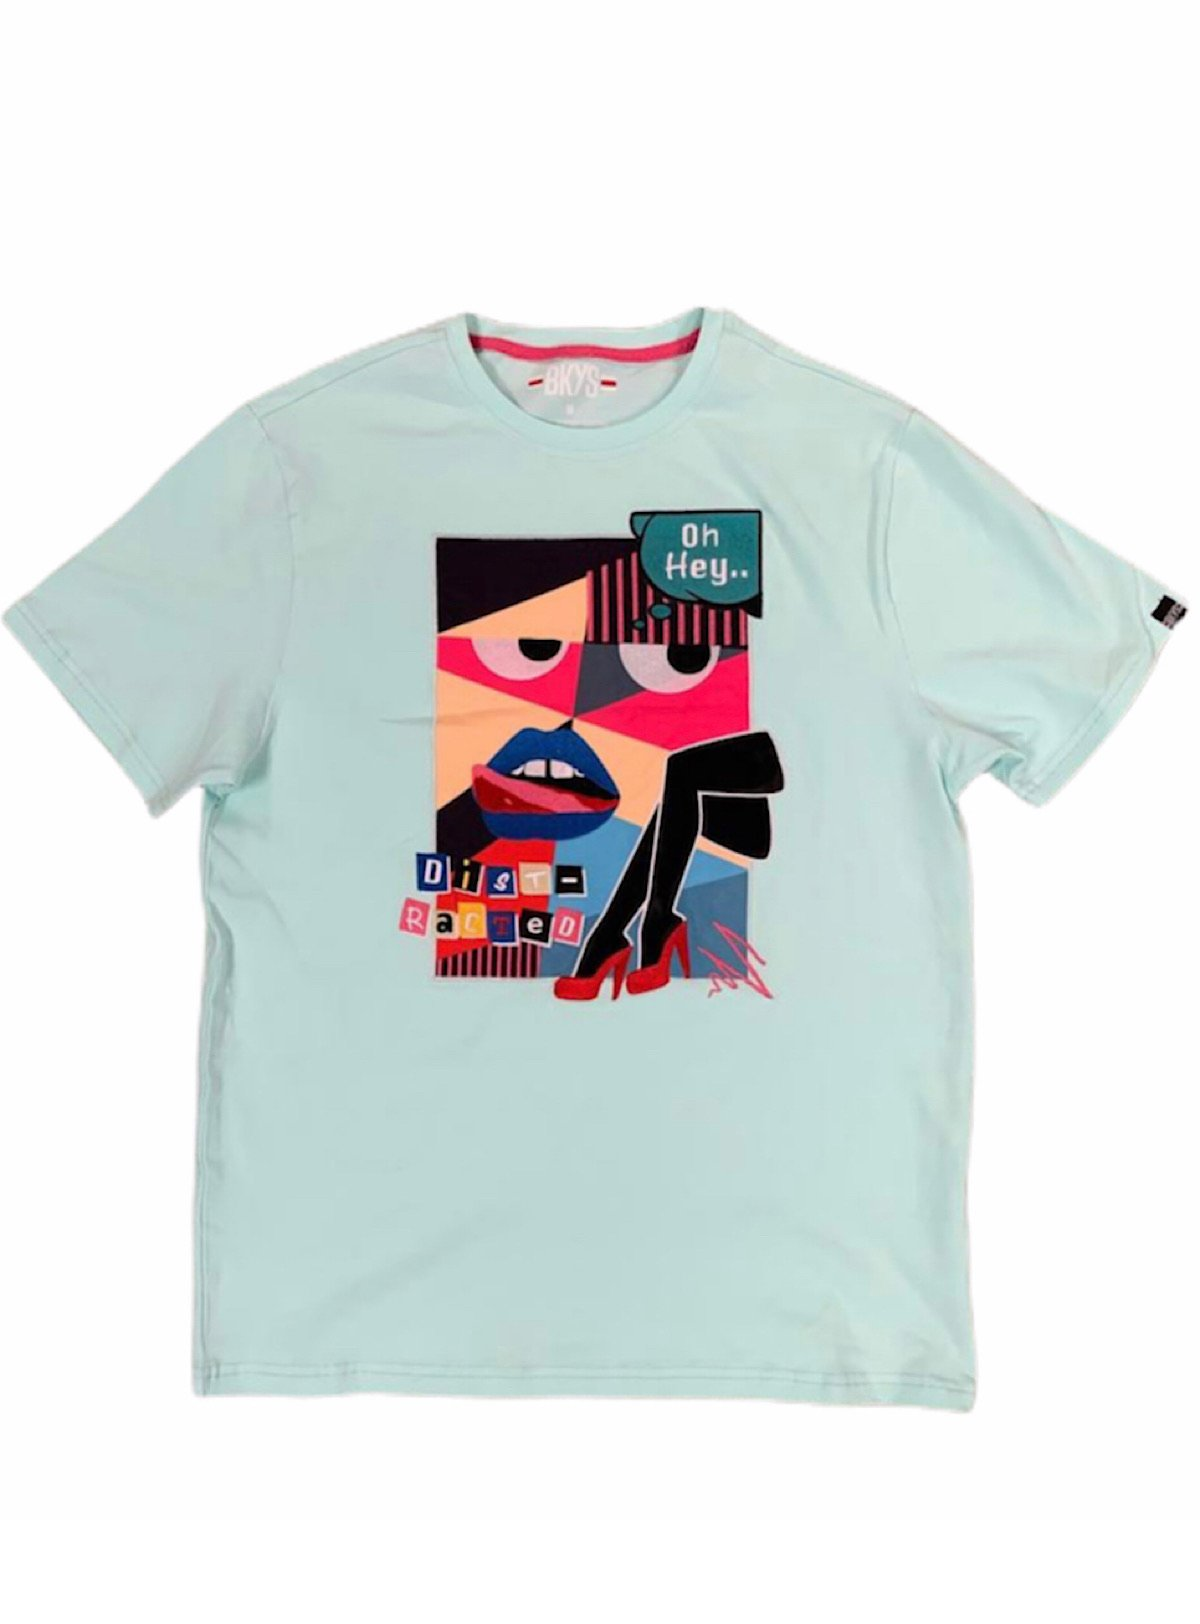 Bkys T-Shirt - Distracted - Teal - T125